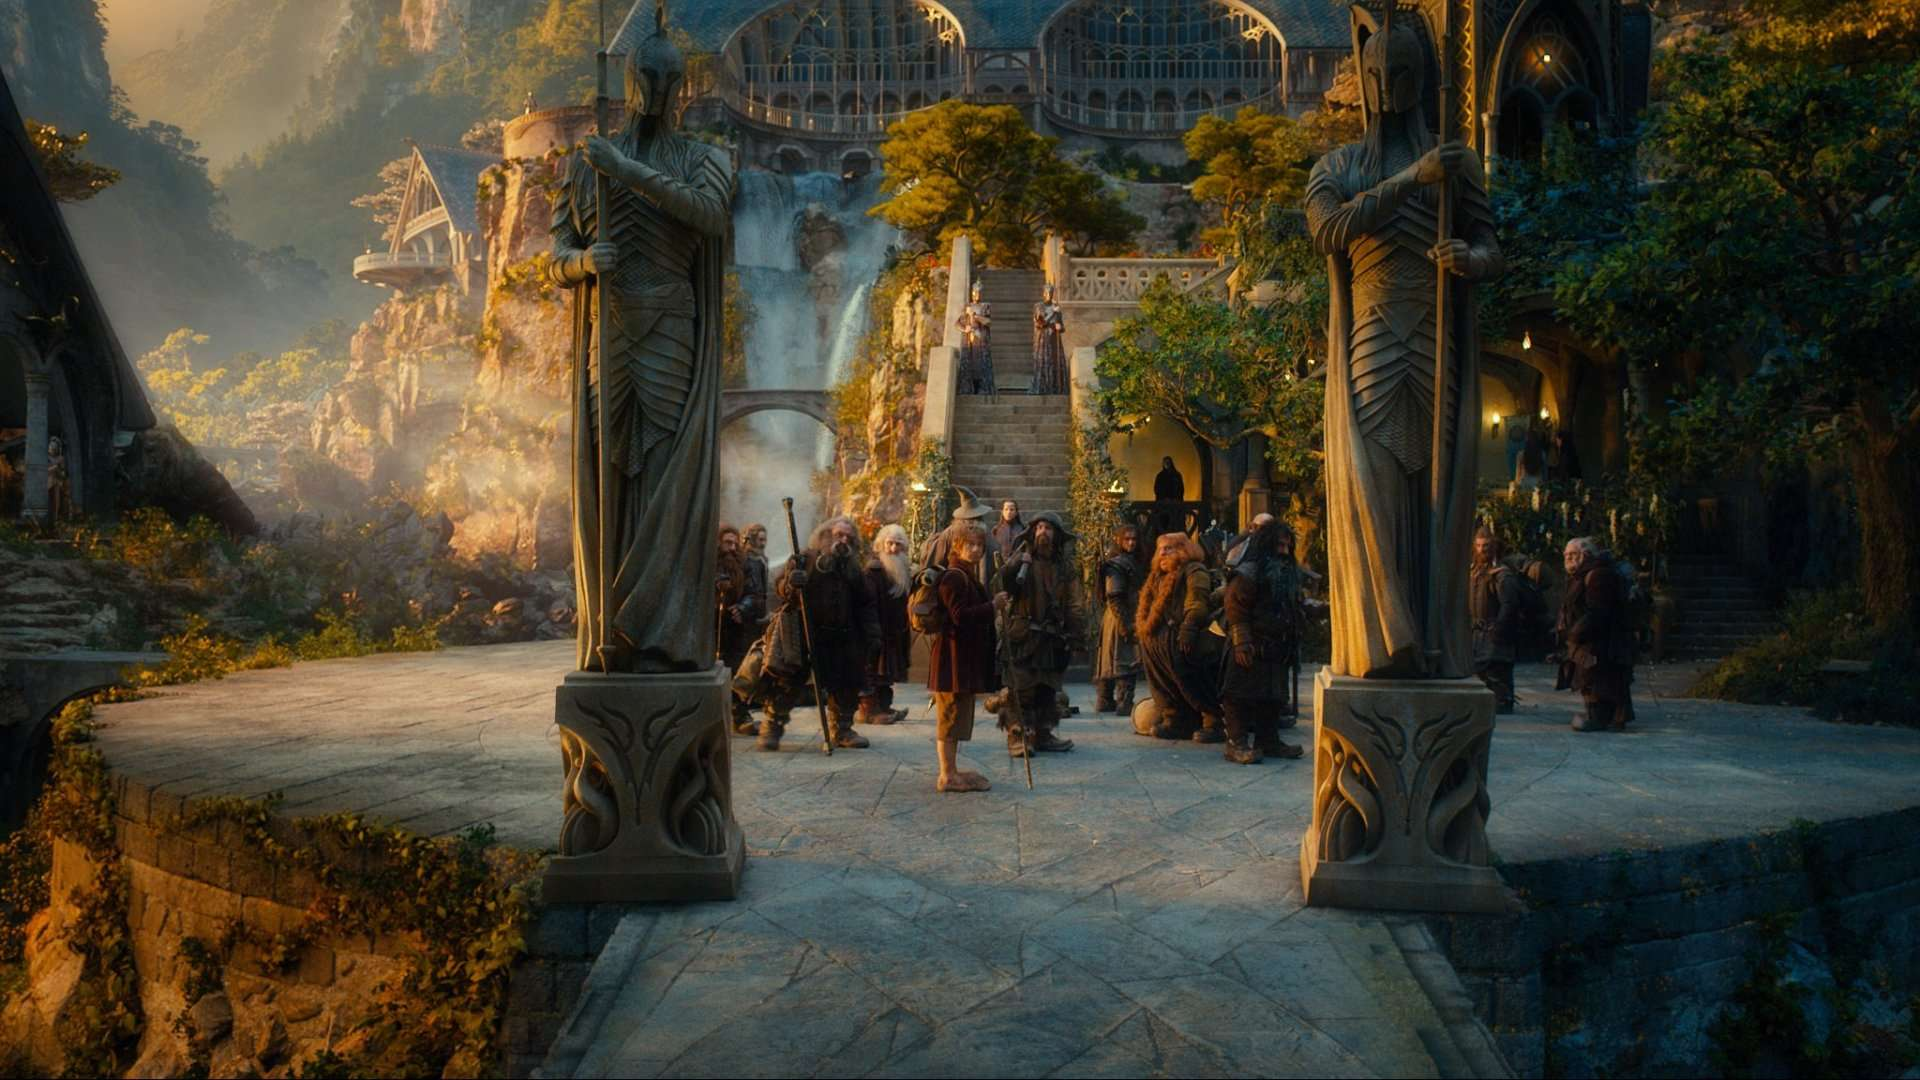 The-Hobbit-An-Unexpected-Journey-Main-2